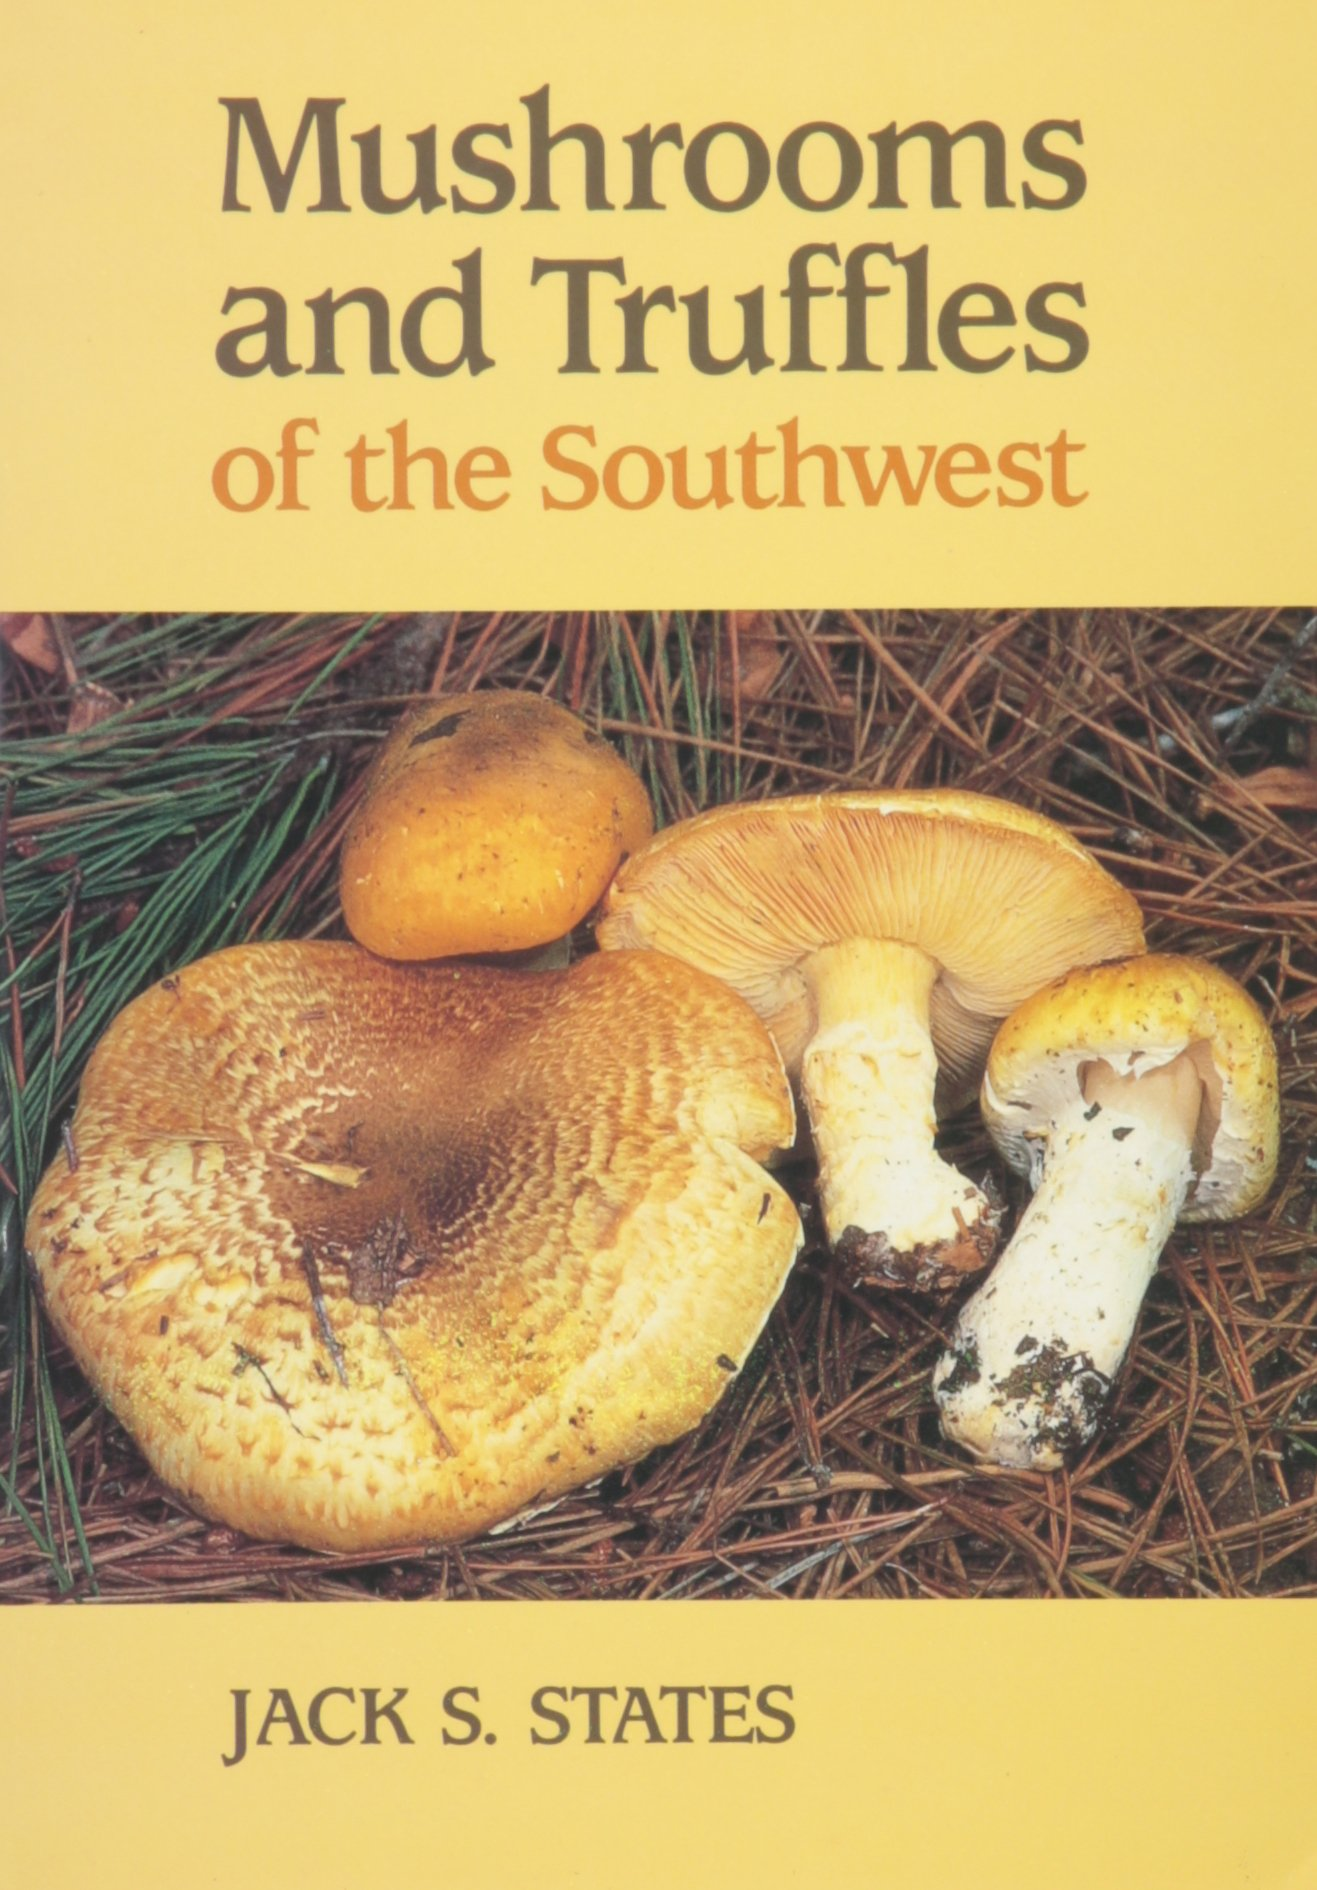 Mushrooms and Truffles of the Southwest